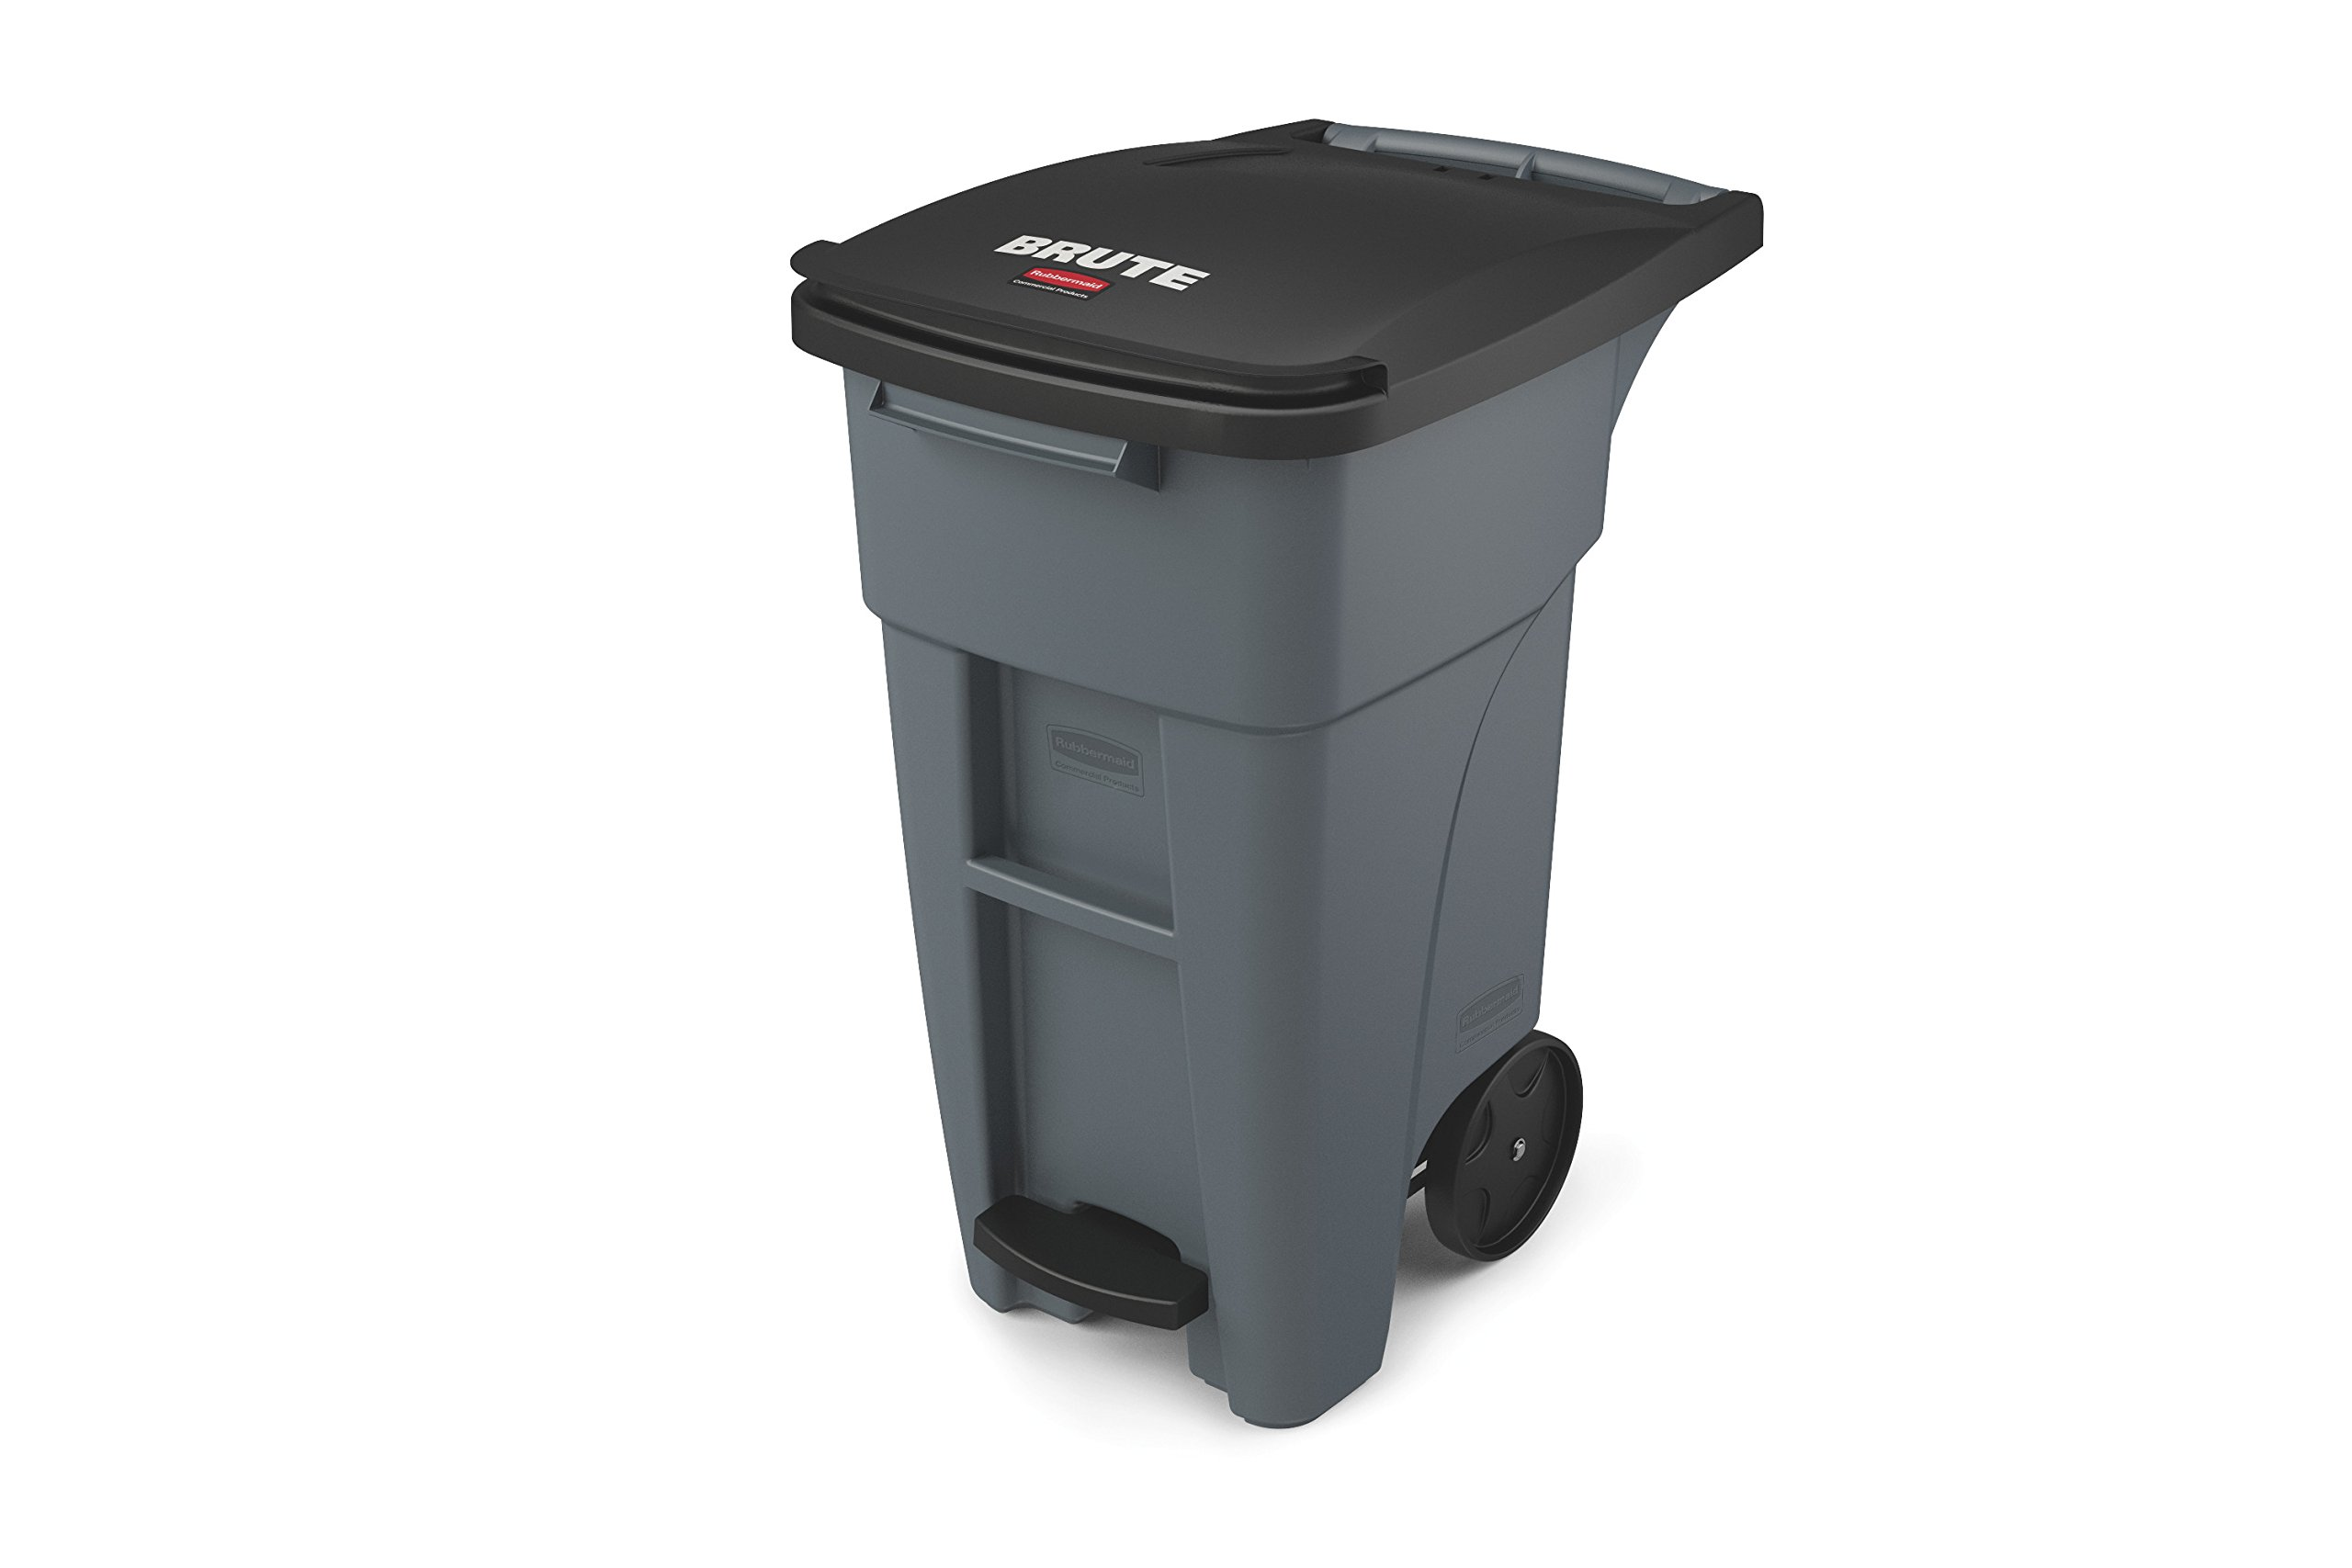 Rubbermaid Commercial 1971944 Brute Step-On Rollout Trash Can, 32 gal/120 L, 37.160'' Height, 20.620'' Width, Gray